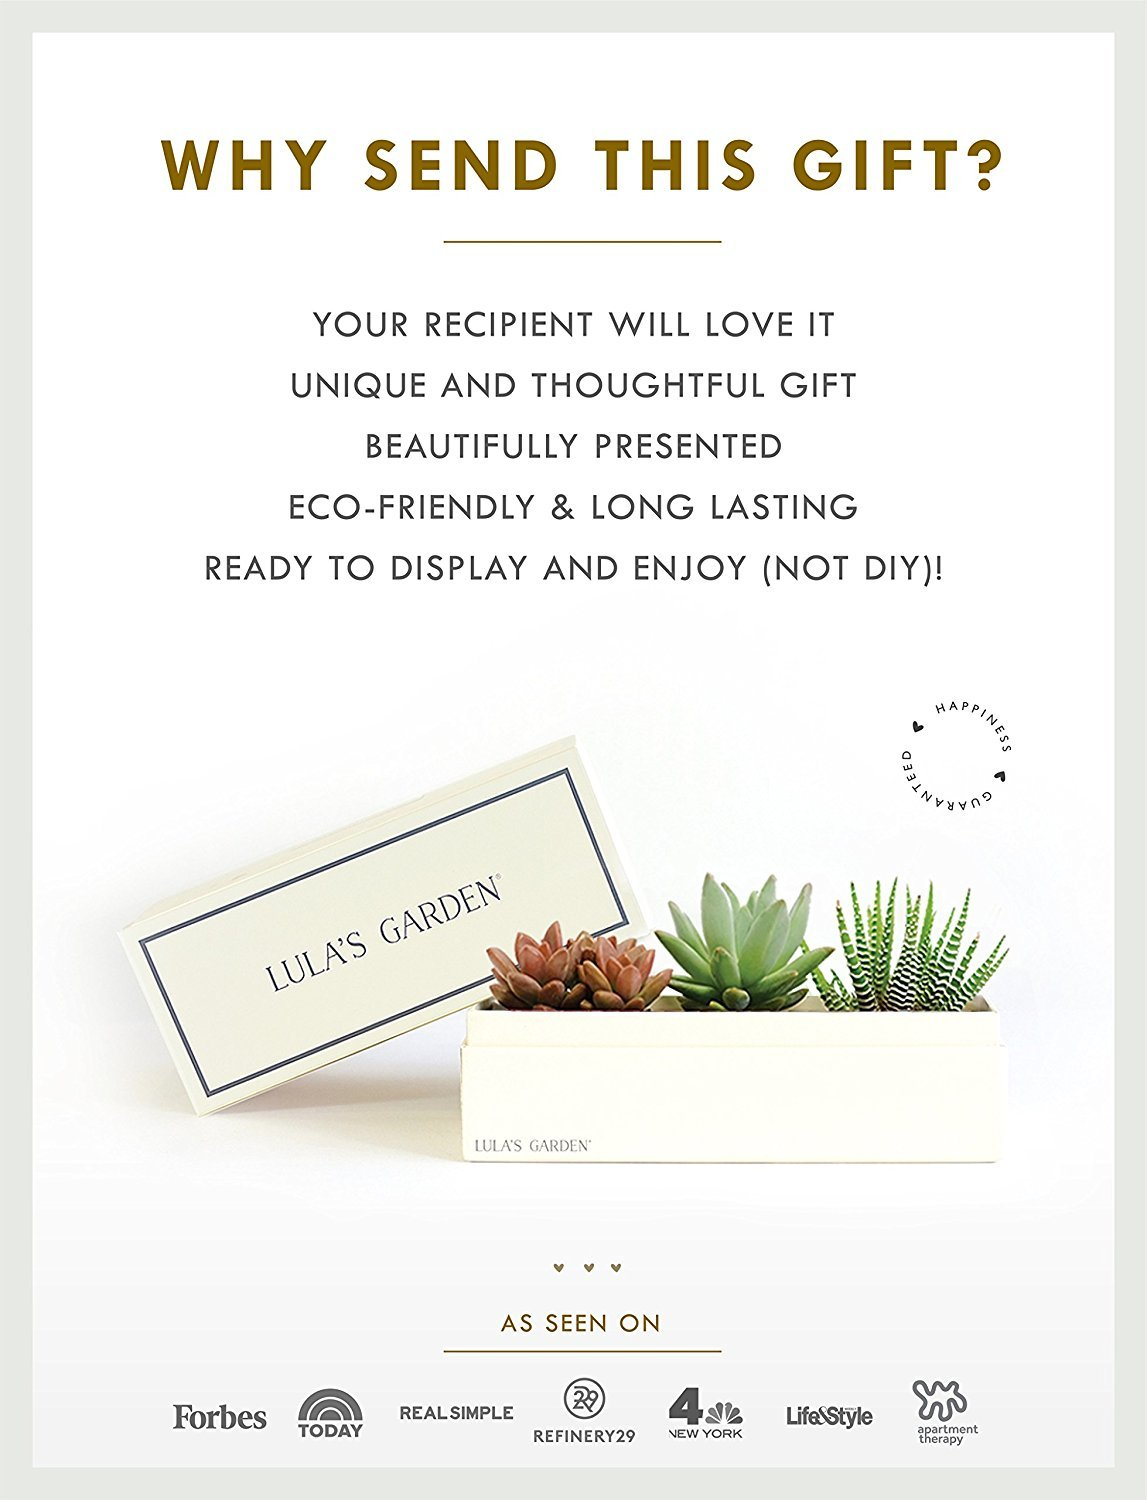 Live Succulent Plant - Garden Centerpiece with I Love You Gift Box - Perfect and Unique Gift for Wife, Mom, Friend, Co-Workers, Boss or Teacher (Jewel Garden, I Love You) by Lula's Garden (Image #4)